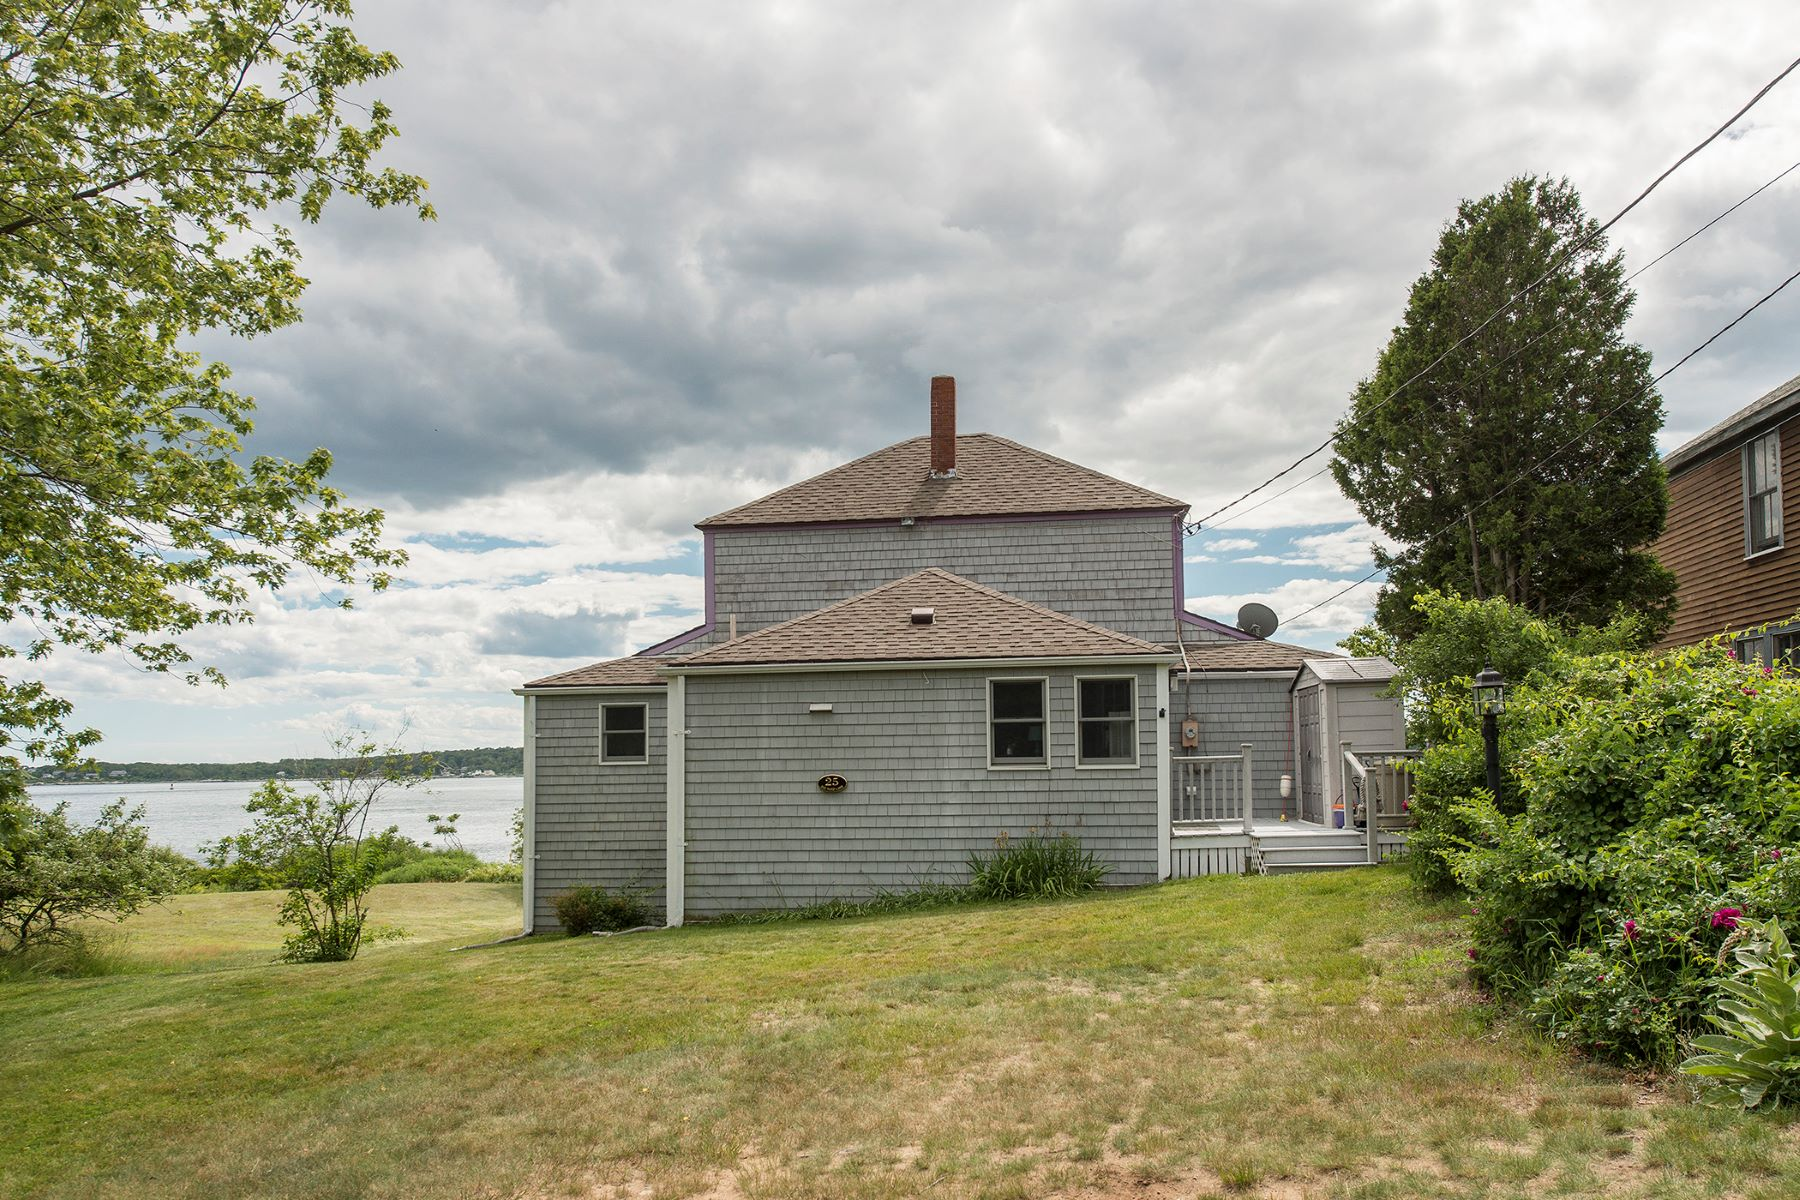 Additional photo for property listing at 25 Red Sands Lane 25 Red Sands Lane Long Island, Maine 04050 United States